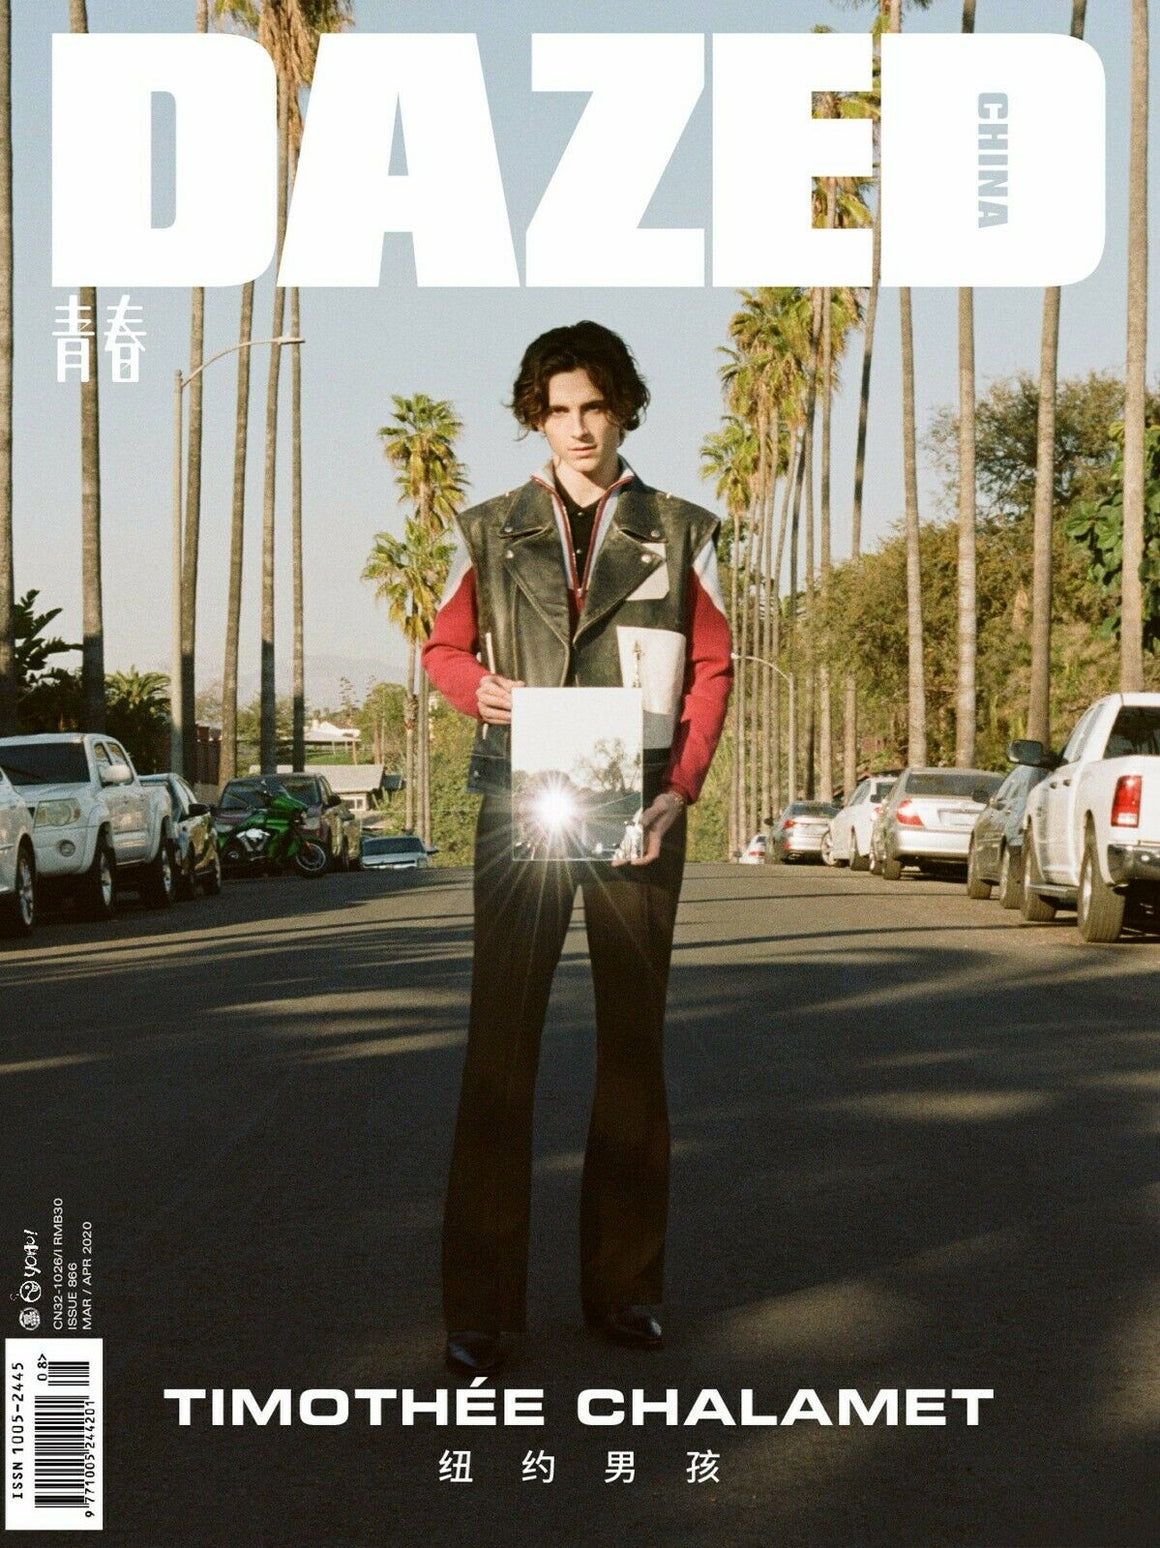 Timothee Chalamet COVER DAZED CHINA MAGAZINE MARCH 2020